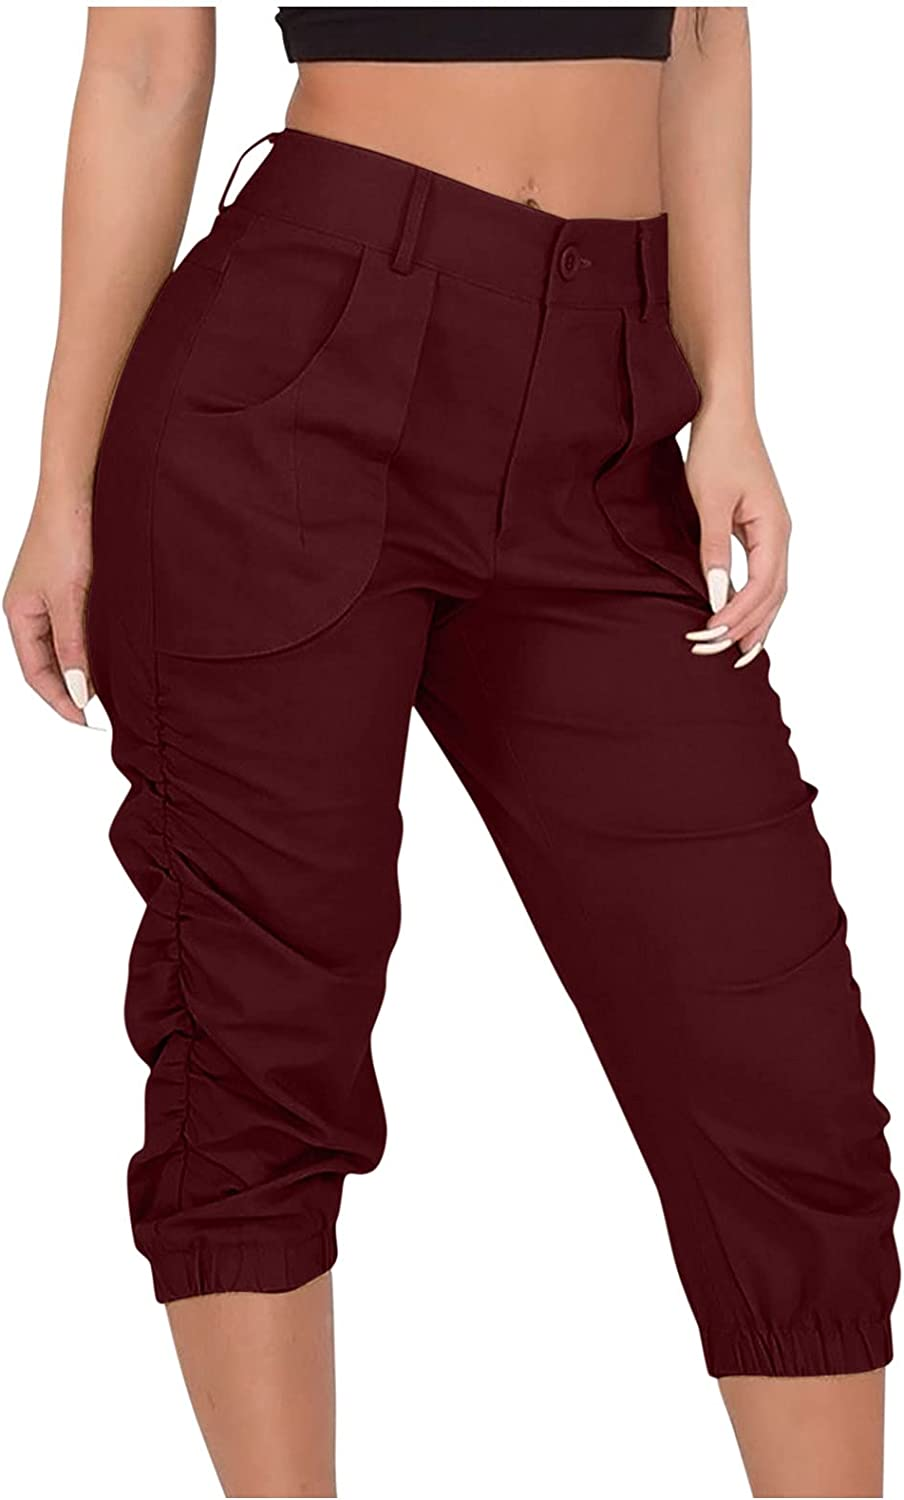 HONGJ Mid-Calf Cargo Pants for Womens, Summer Casual Slim Fit Cropped Beam Capris Trousers Hiking Joggers Sweatpants